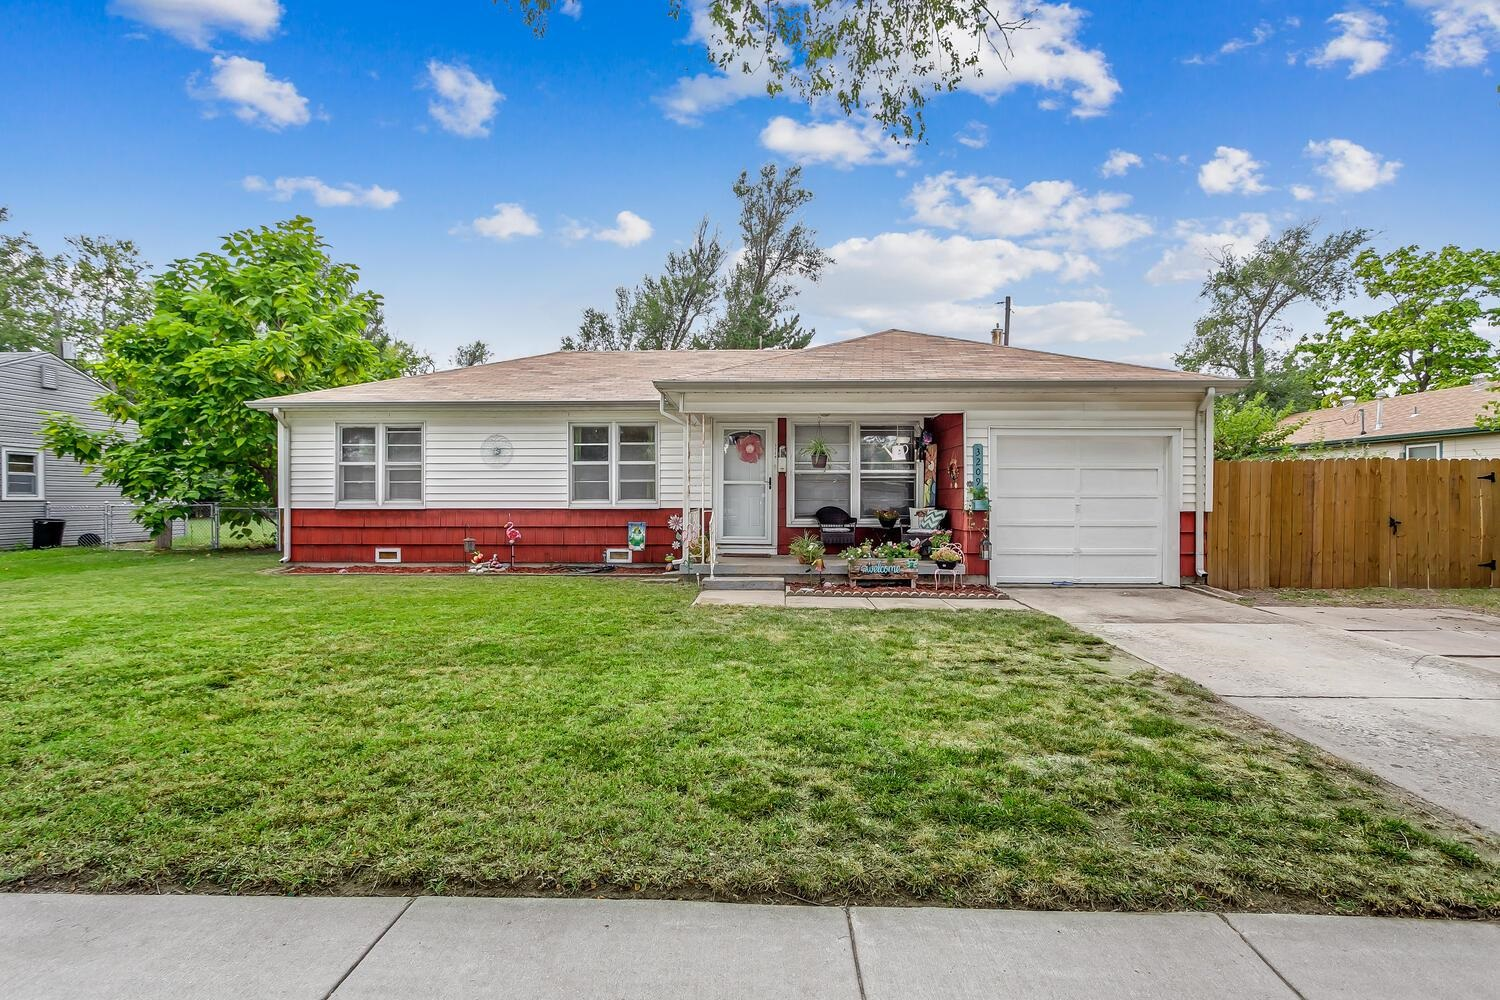 Come check out this 3 bedroom 1 bathroom with  hardwood floors throughout. This home boasts a 2 year